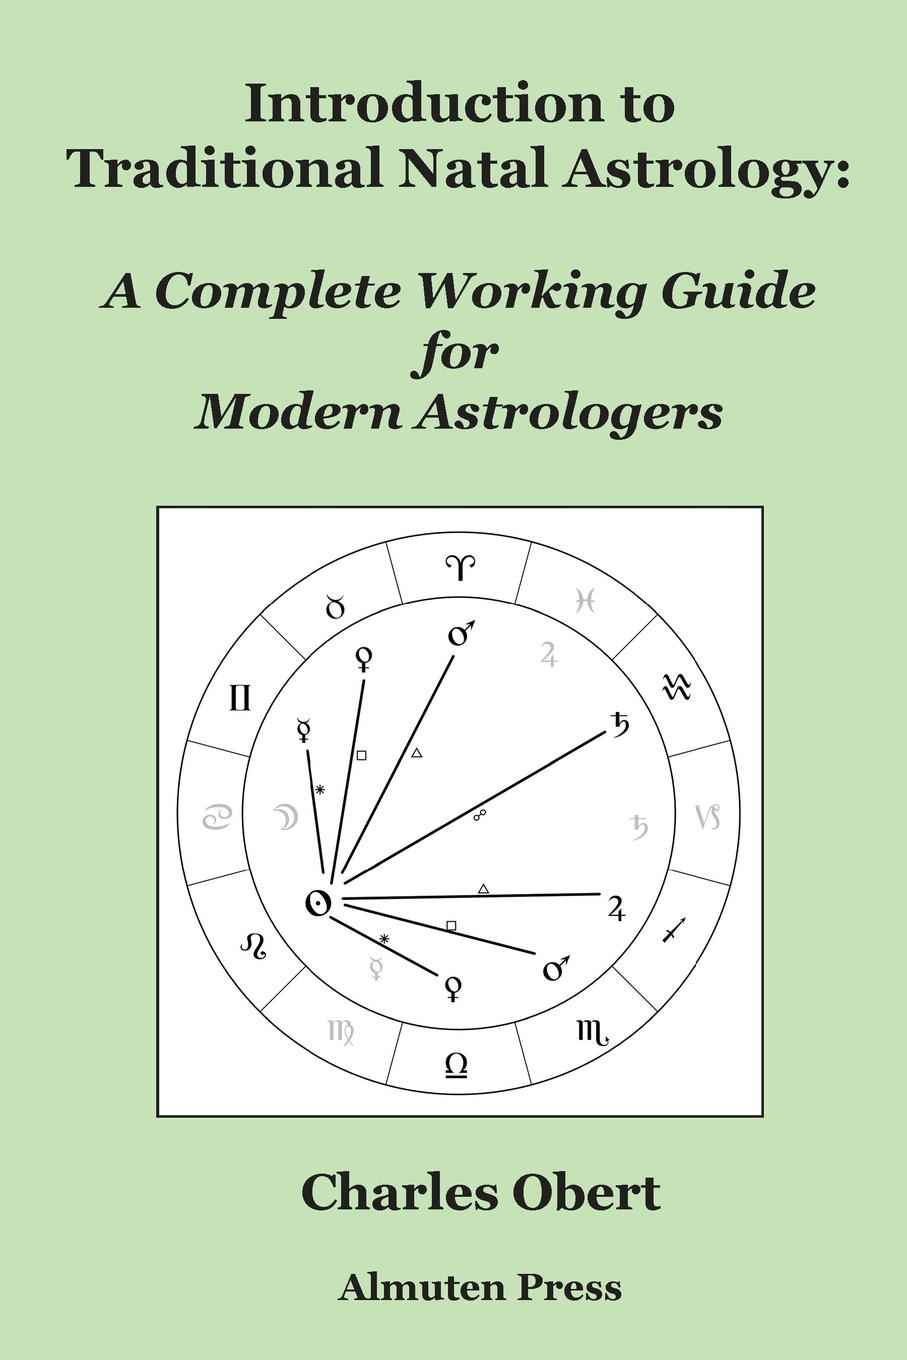 Charles Obert Introduction to Traditional Natal Astrology. A Complete Working Guide for Modern Astrologers evelyn underhill the complete christian mystic a practical step by step guide for awakening to the presence of god